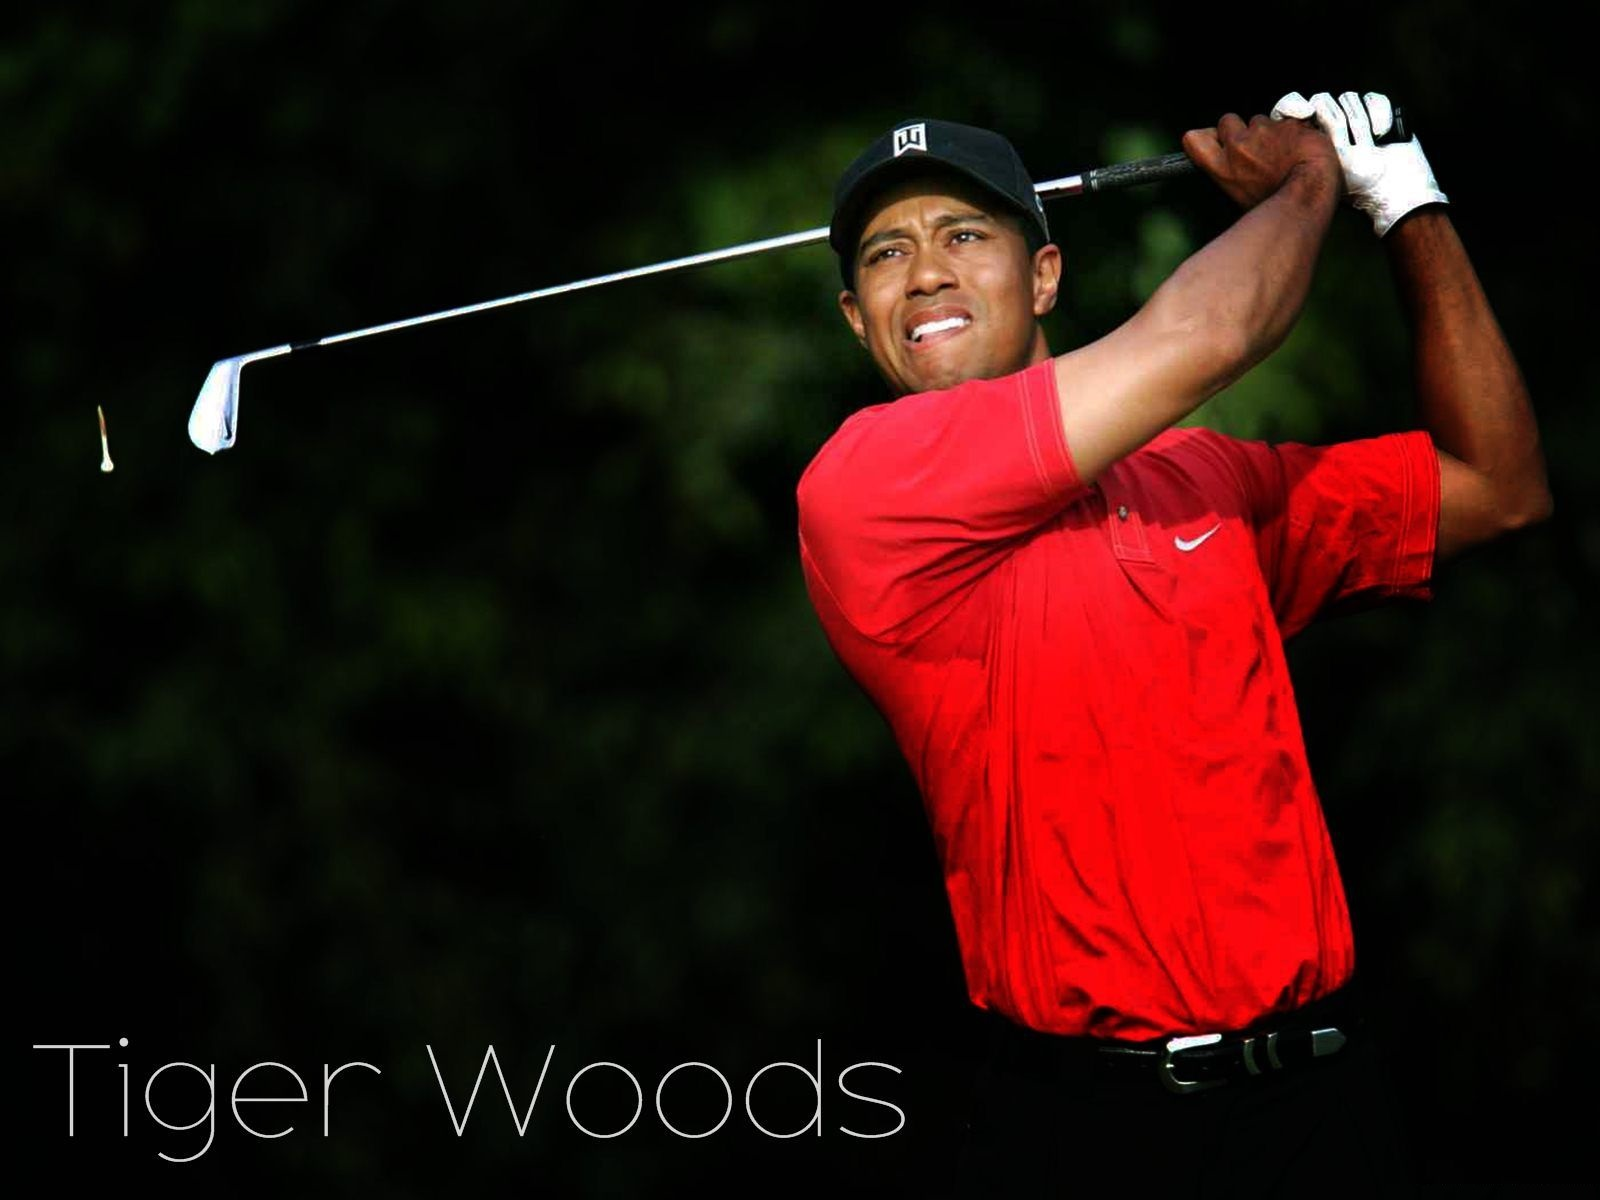 Tiger Woods HD Wallpaper